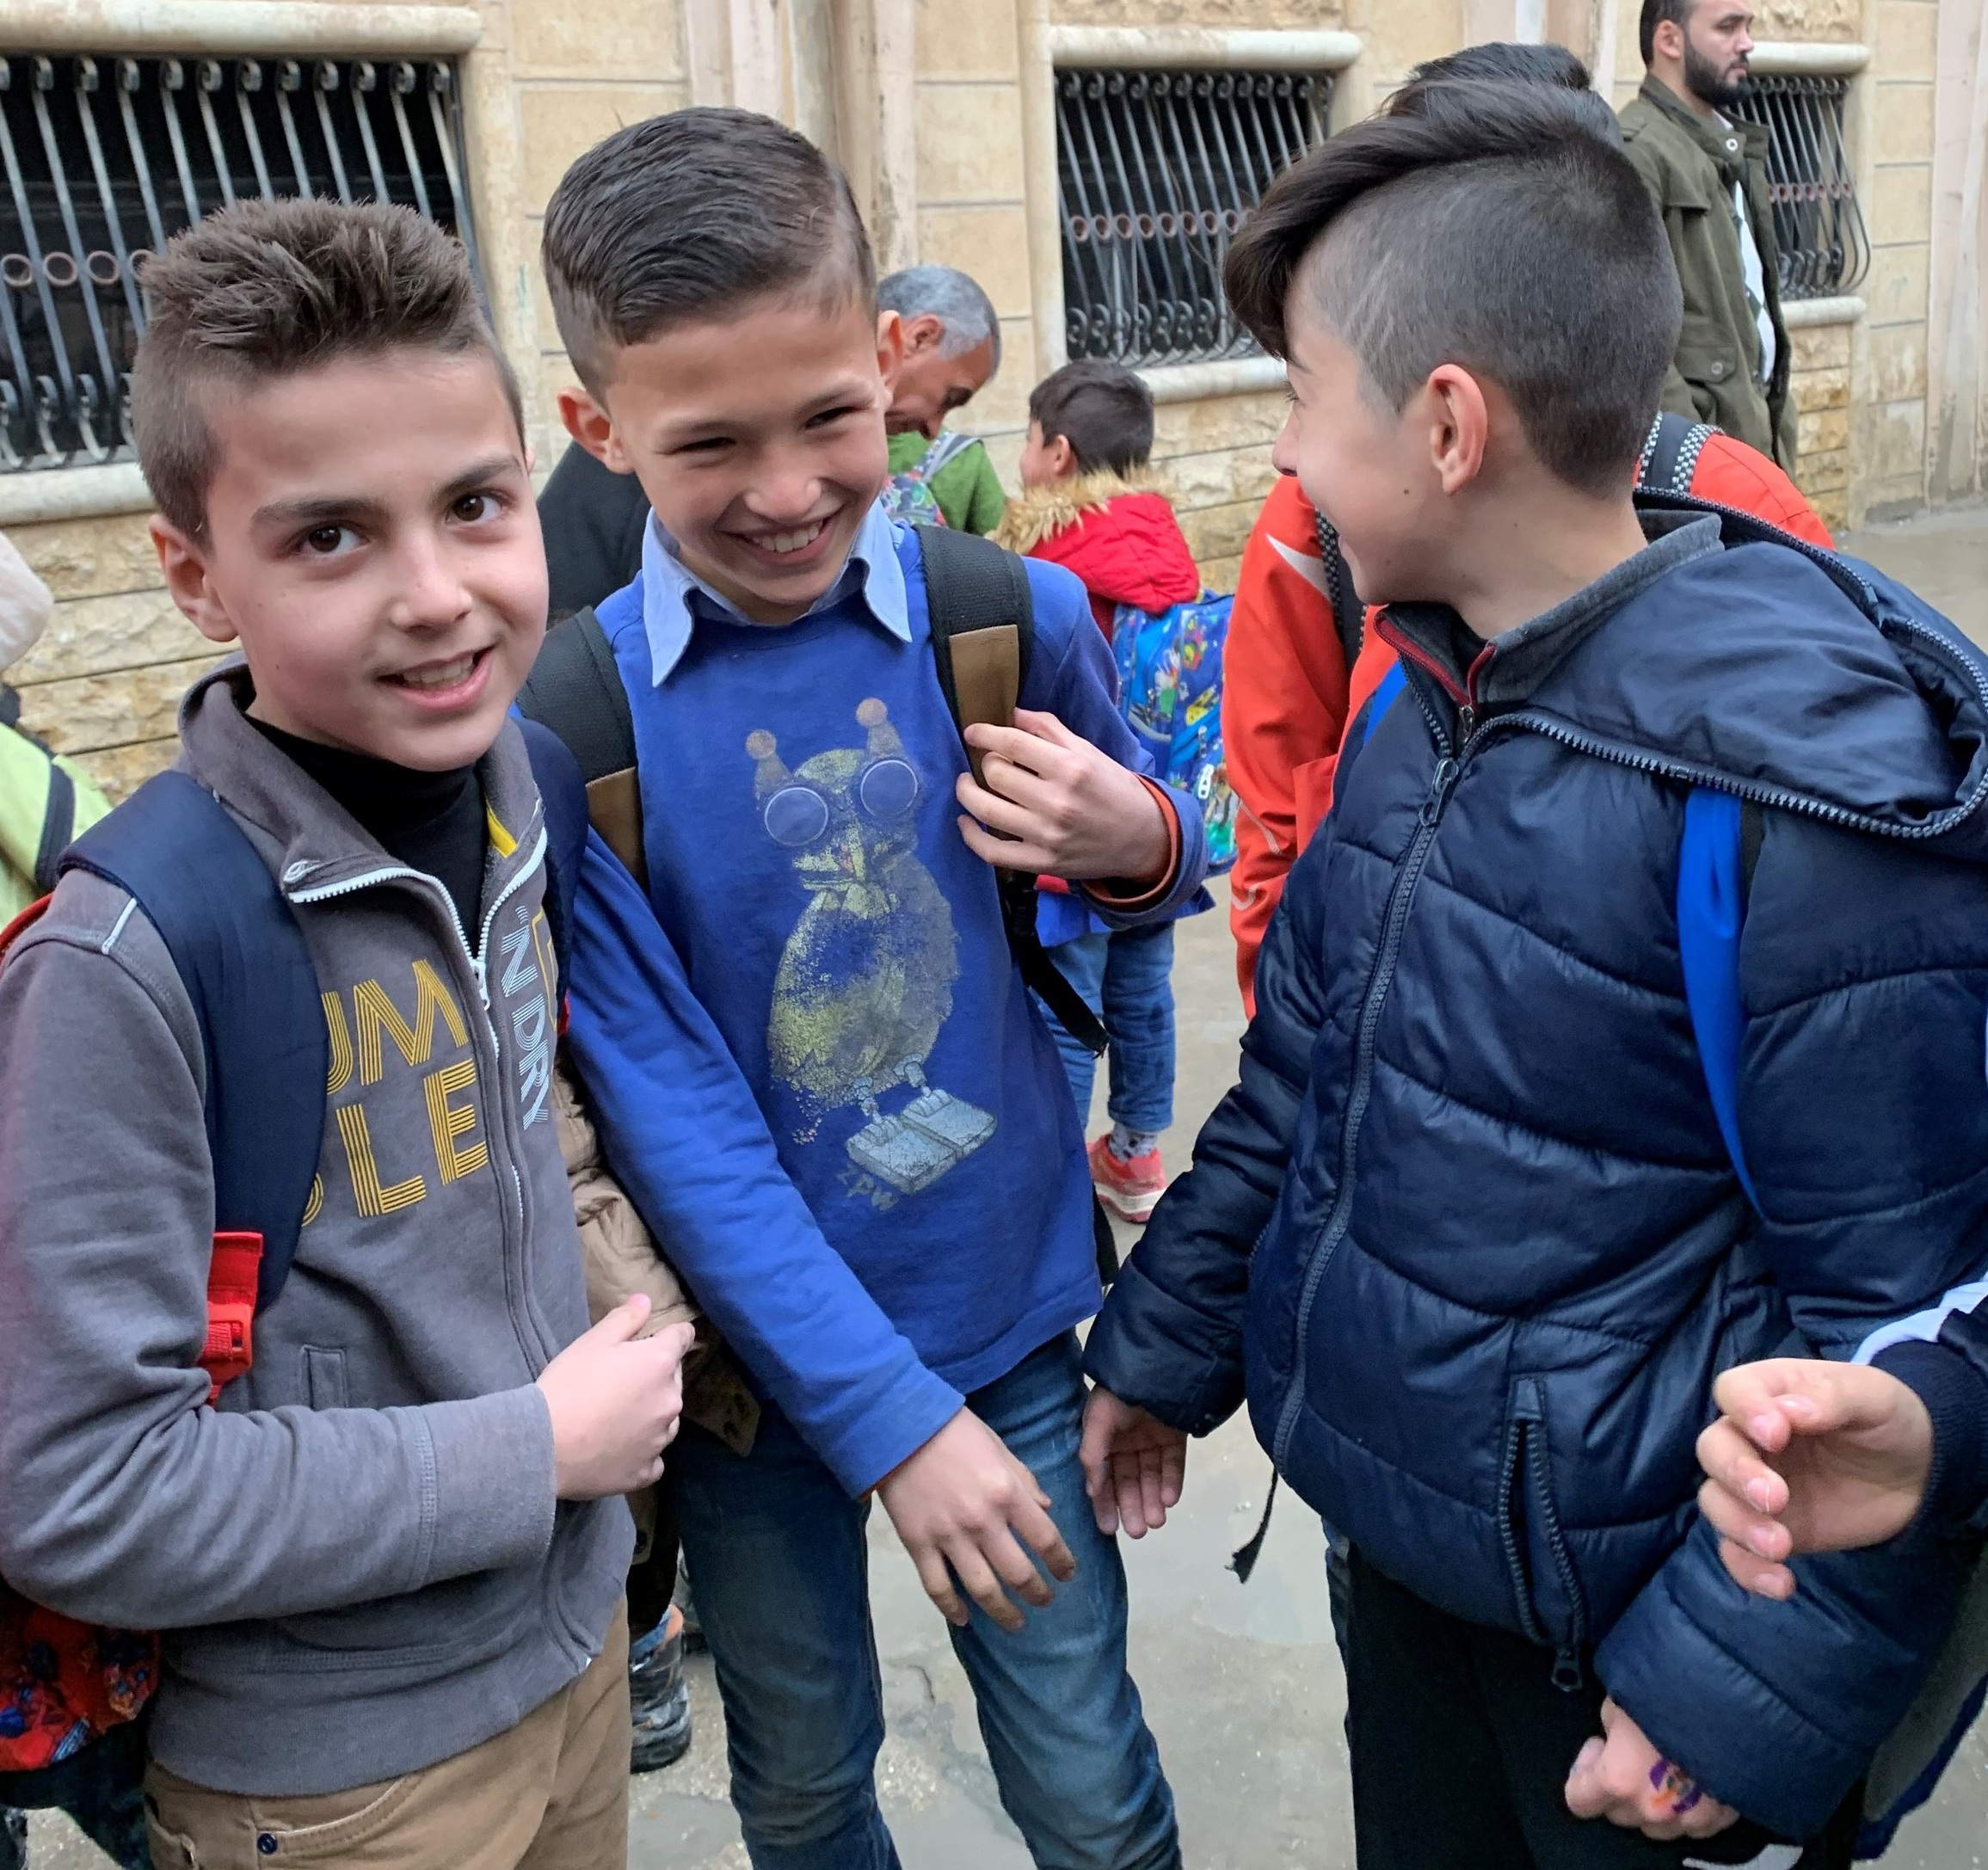 Syria Appeal March 2019 swoop 2.jpg